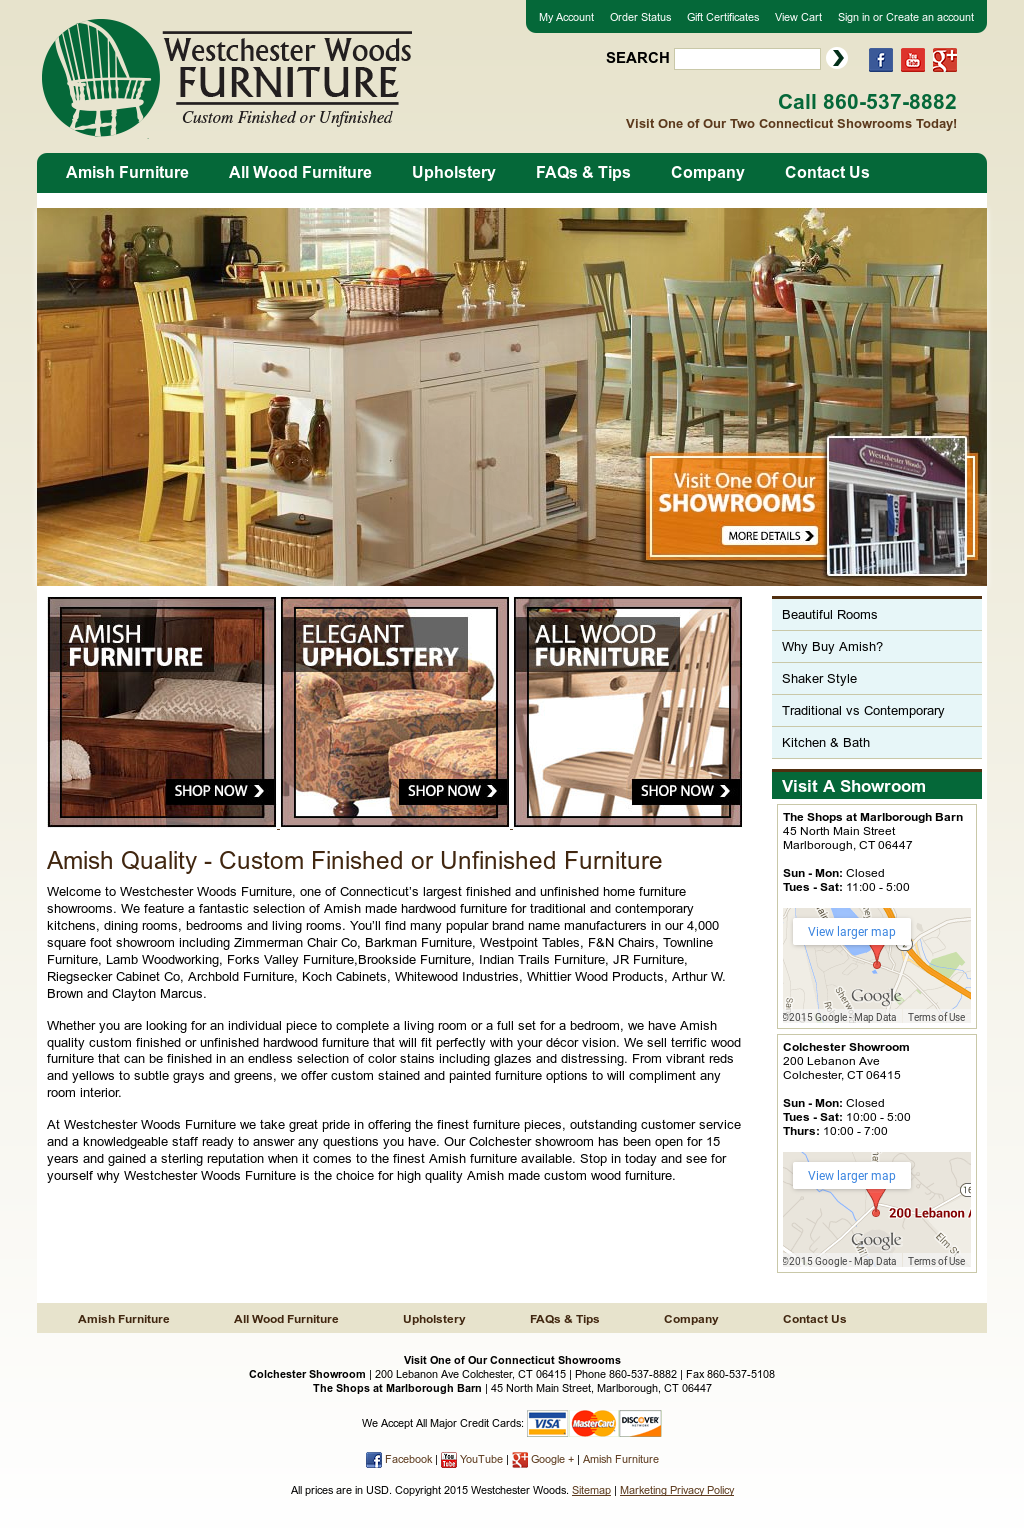 Genial Westchester Woods Furniture Competitors, Revenue And ...